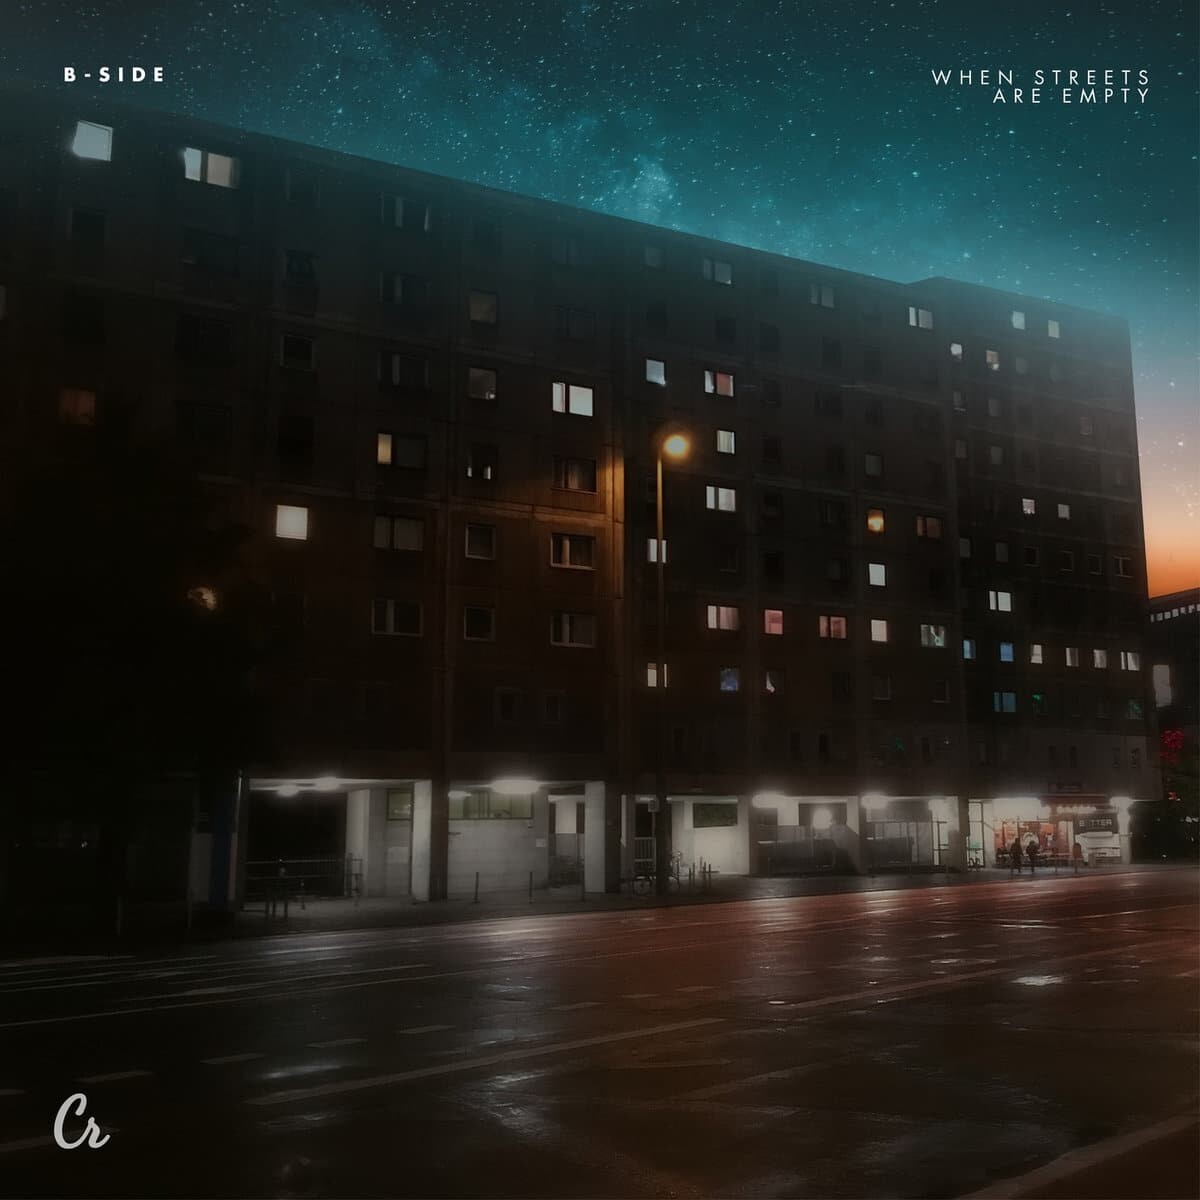 B-Side - When Streets are Empty - Chillhop Records